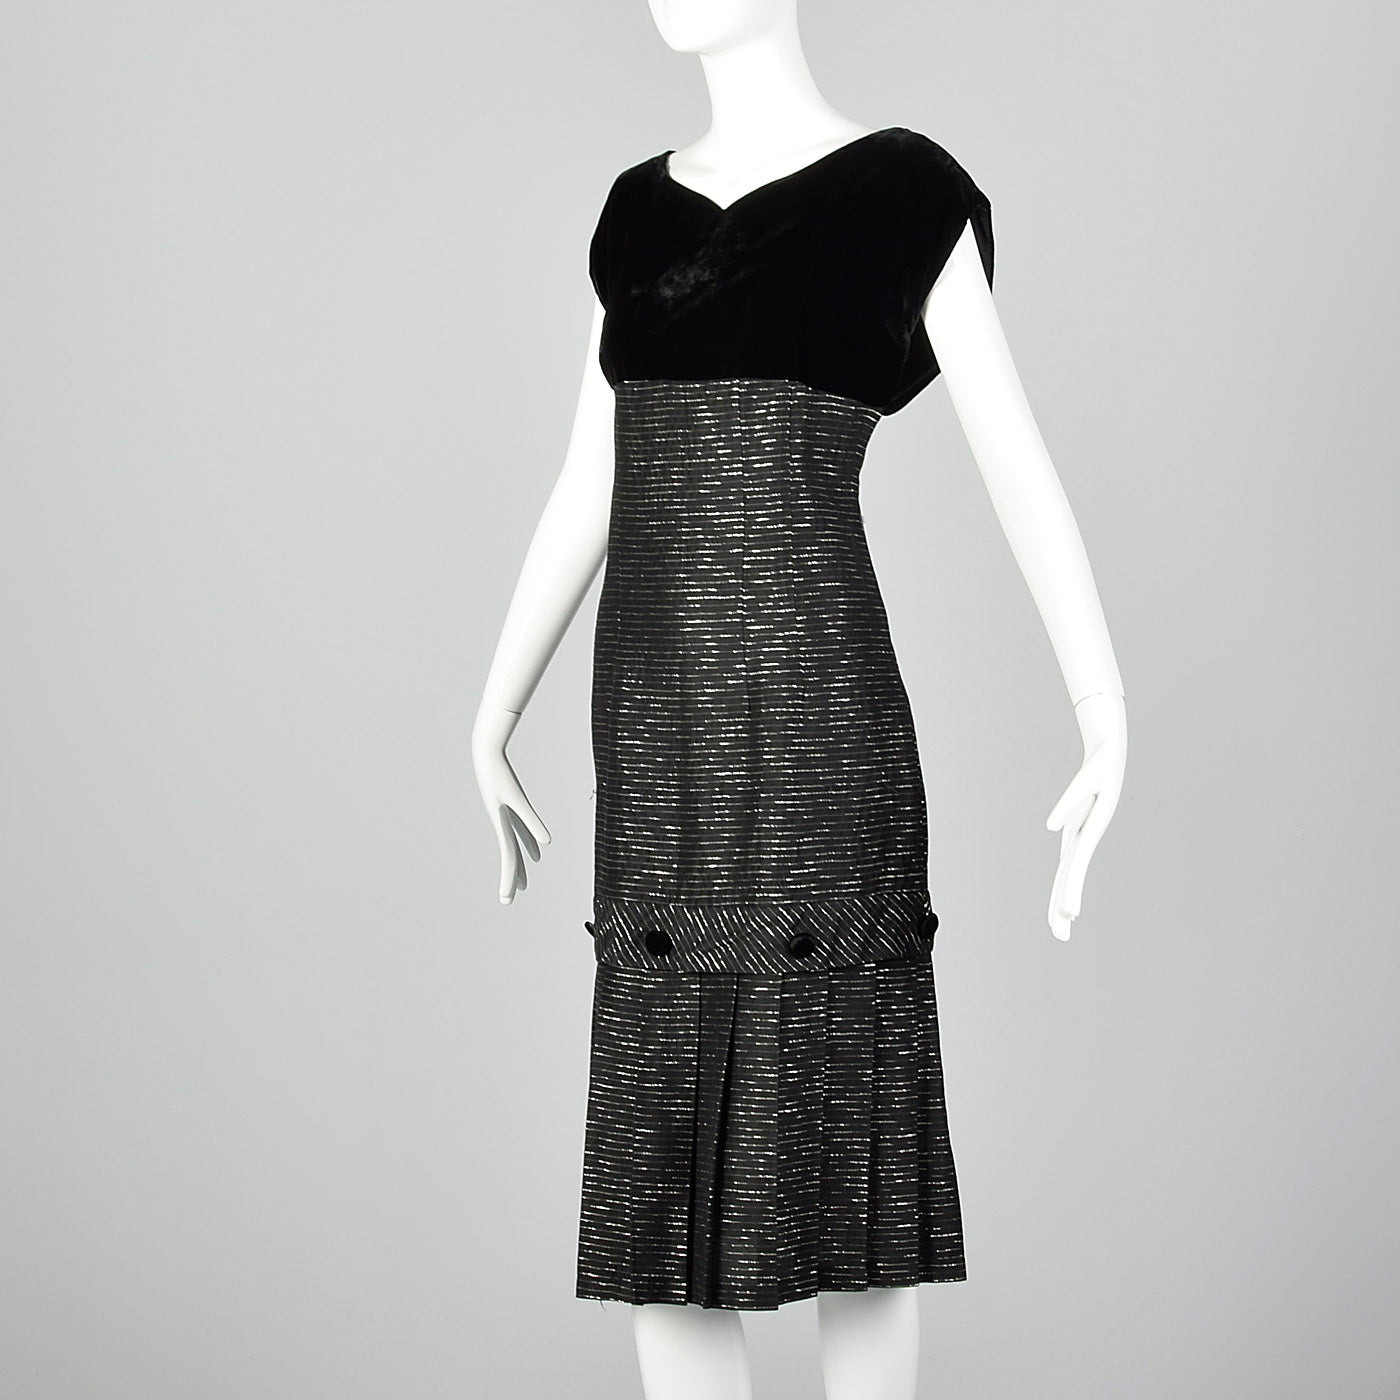 1950s Black Cocktail Dress with Metallic Stripes